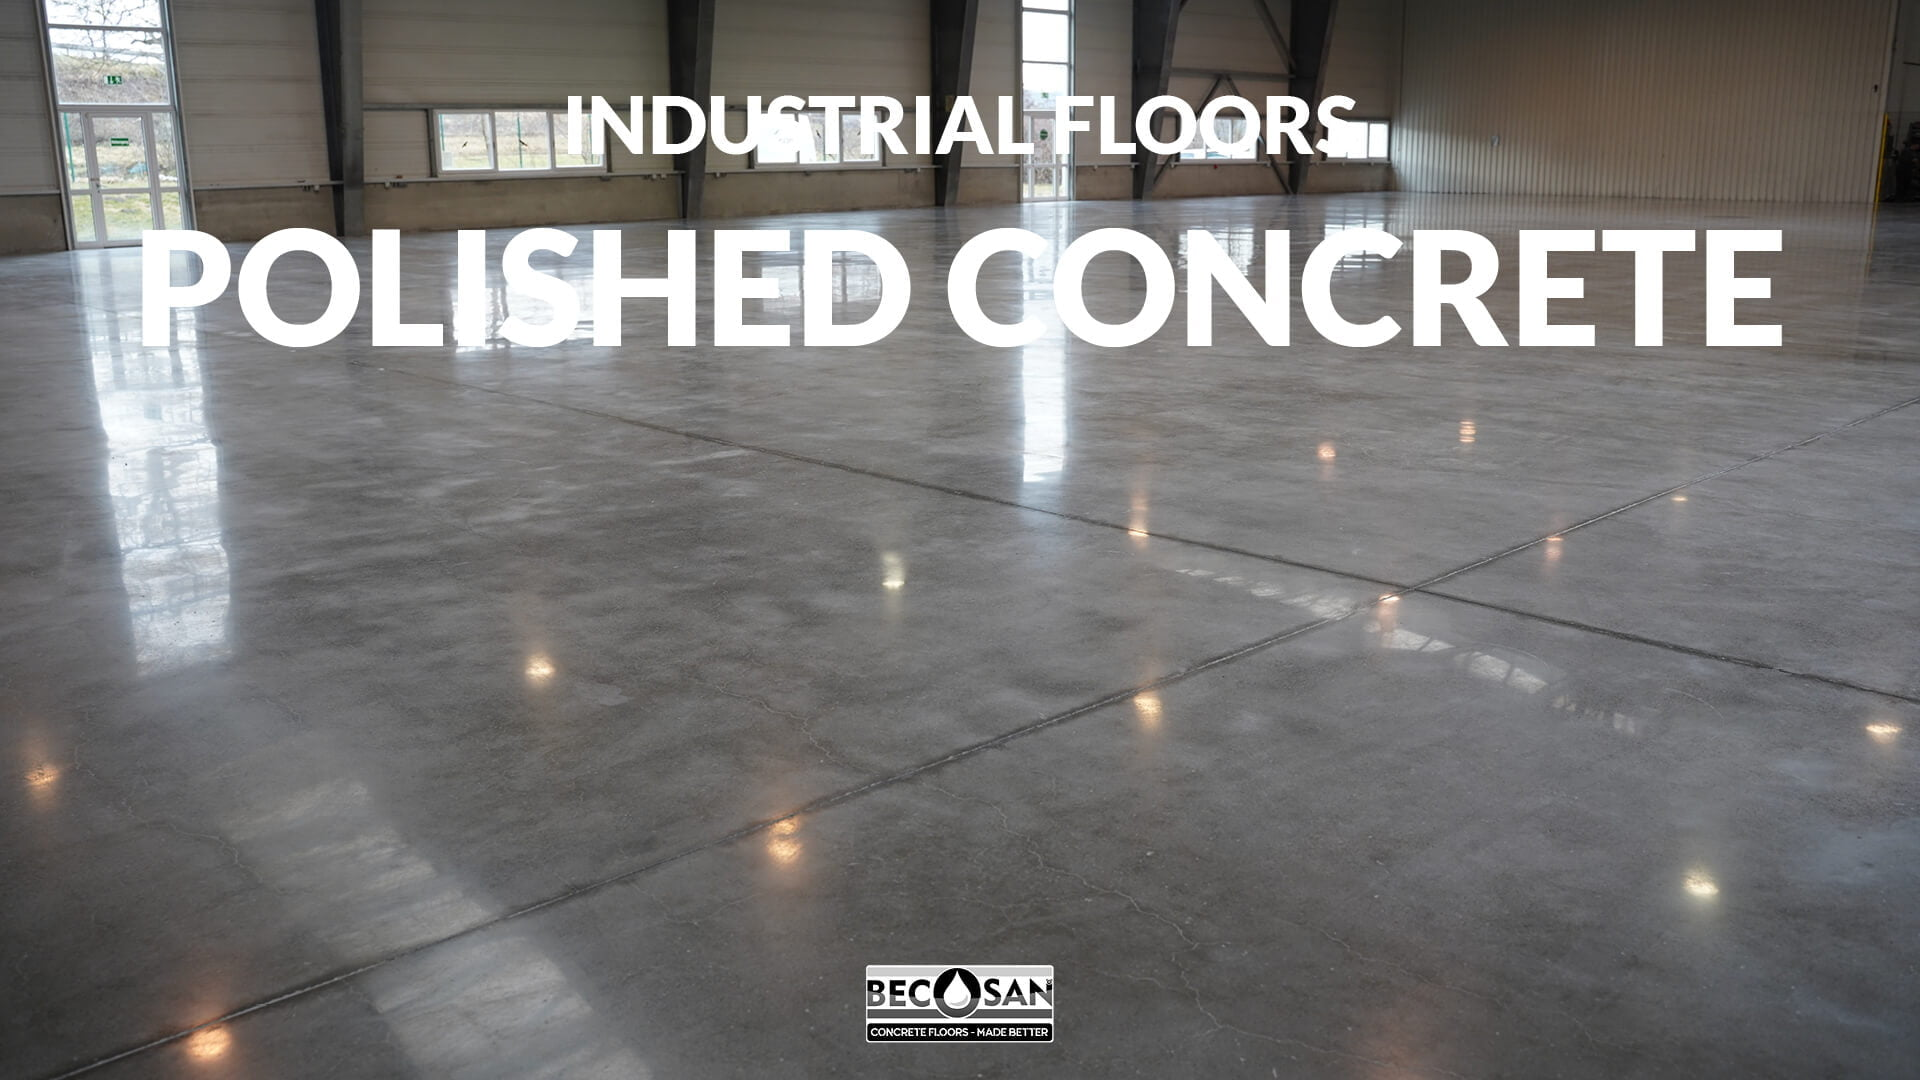 industrial floors - polished concrete